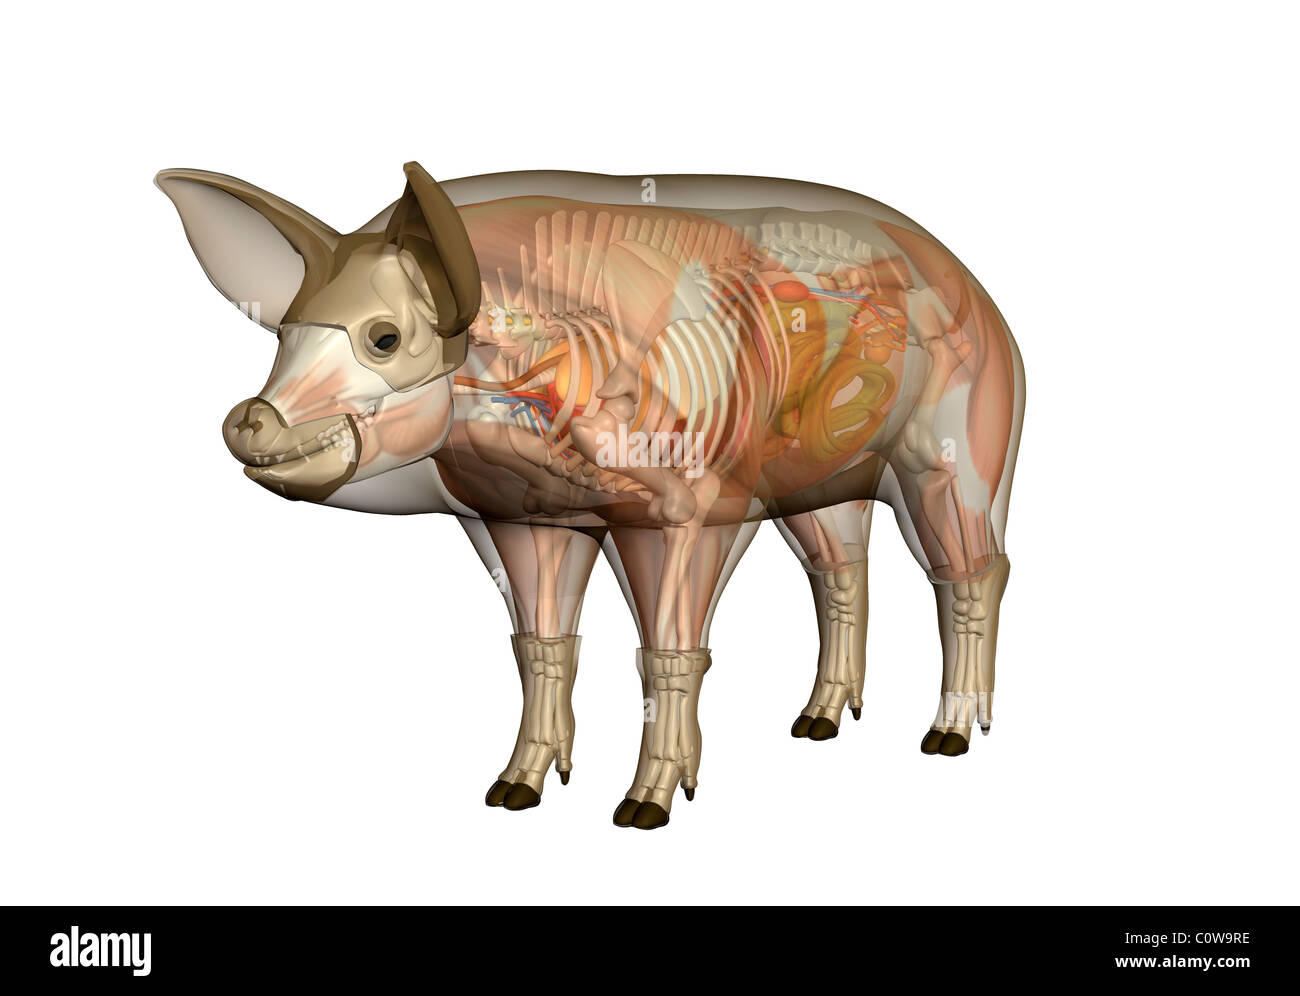 anus in digestion of pig